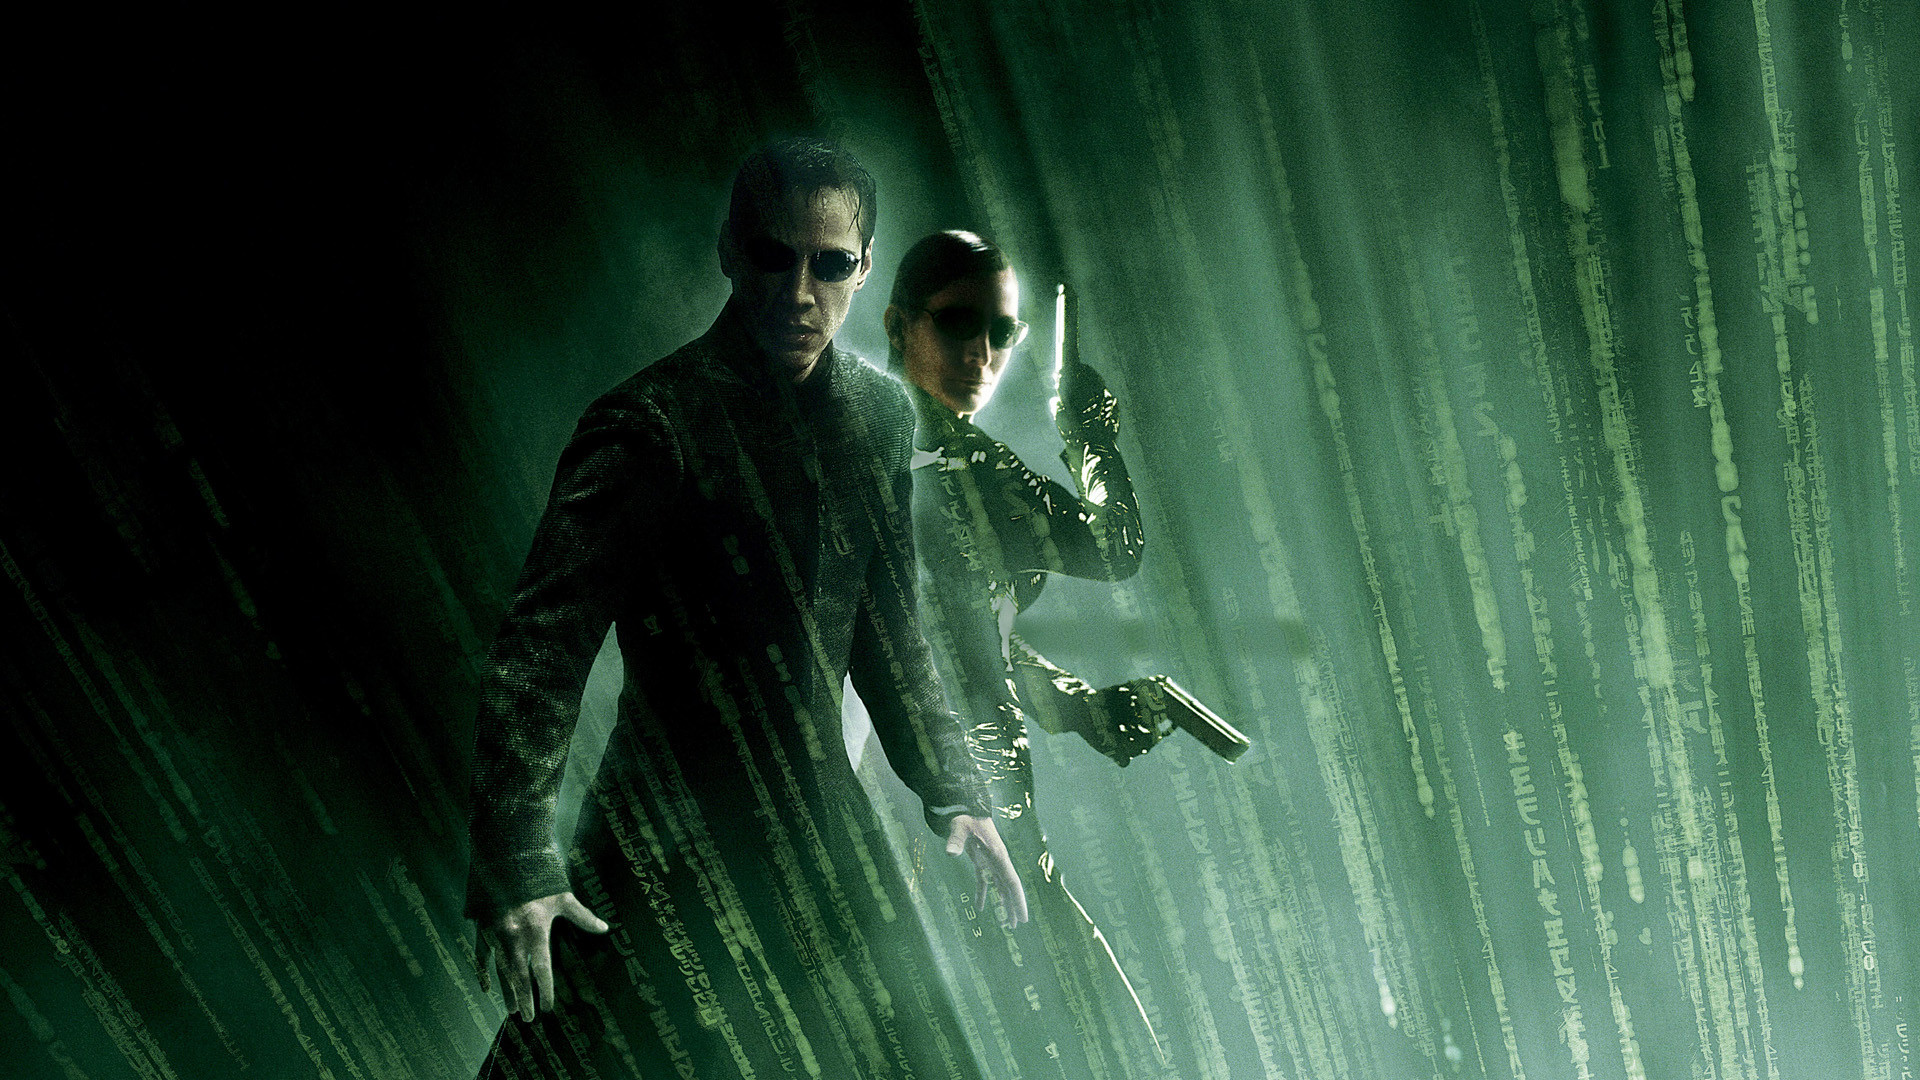 matrix wallpaper background